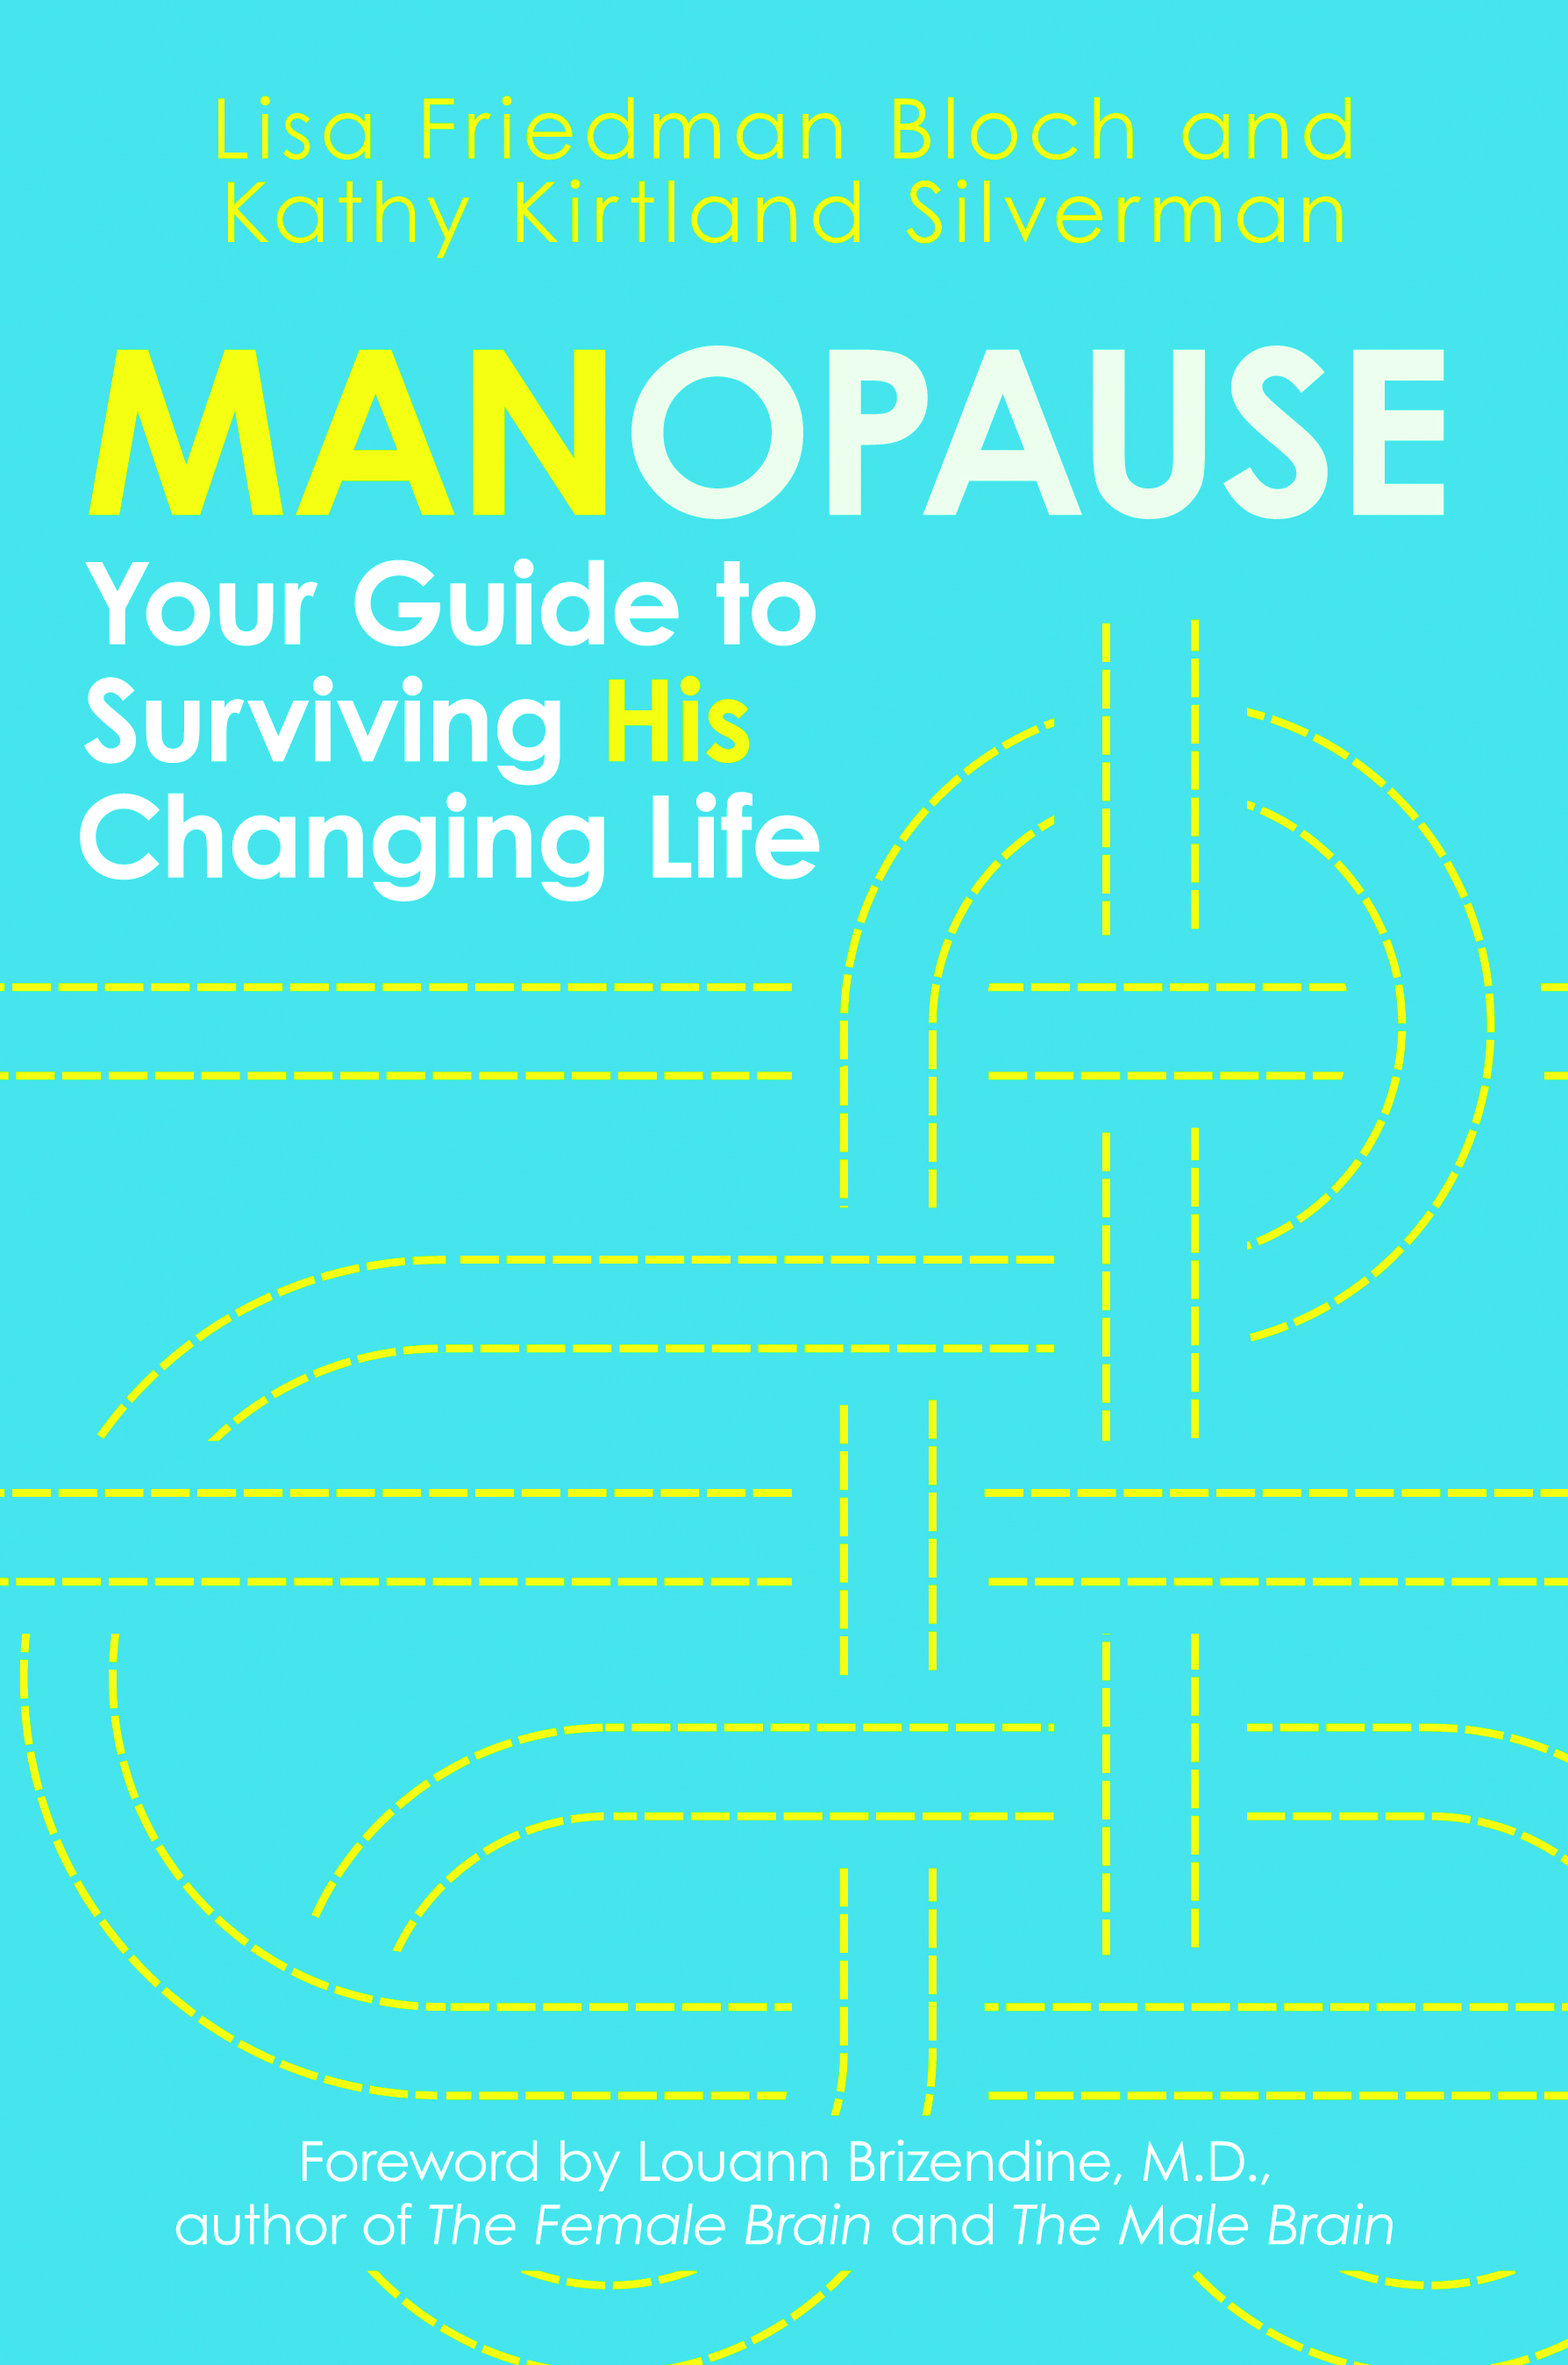 manopause your guide to surviving his changing life